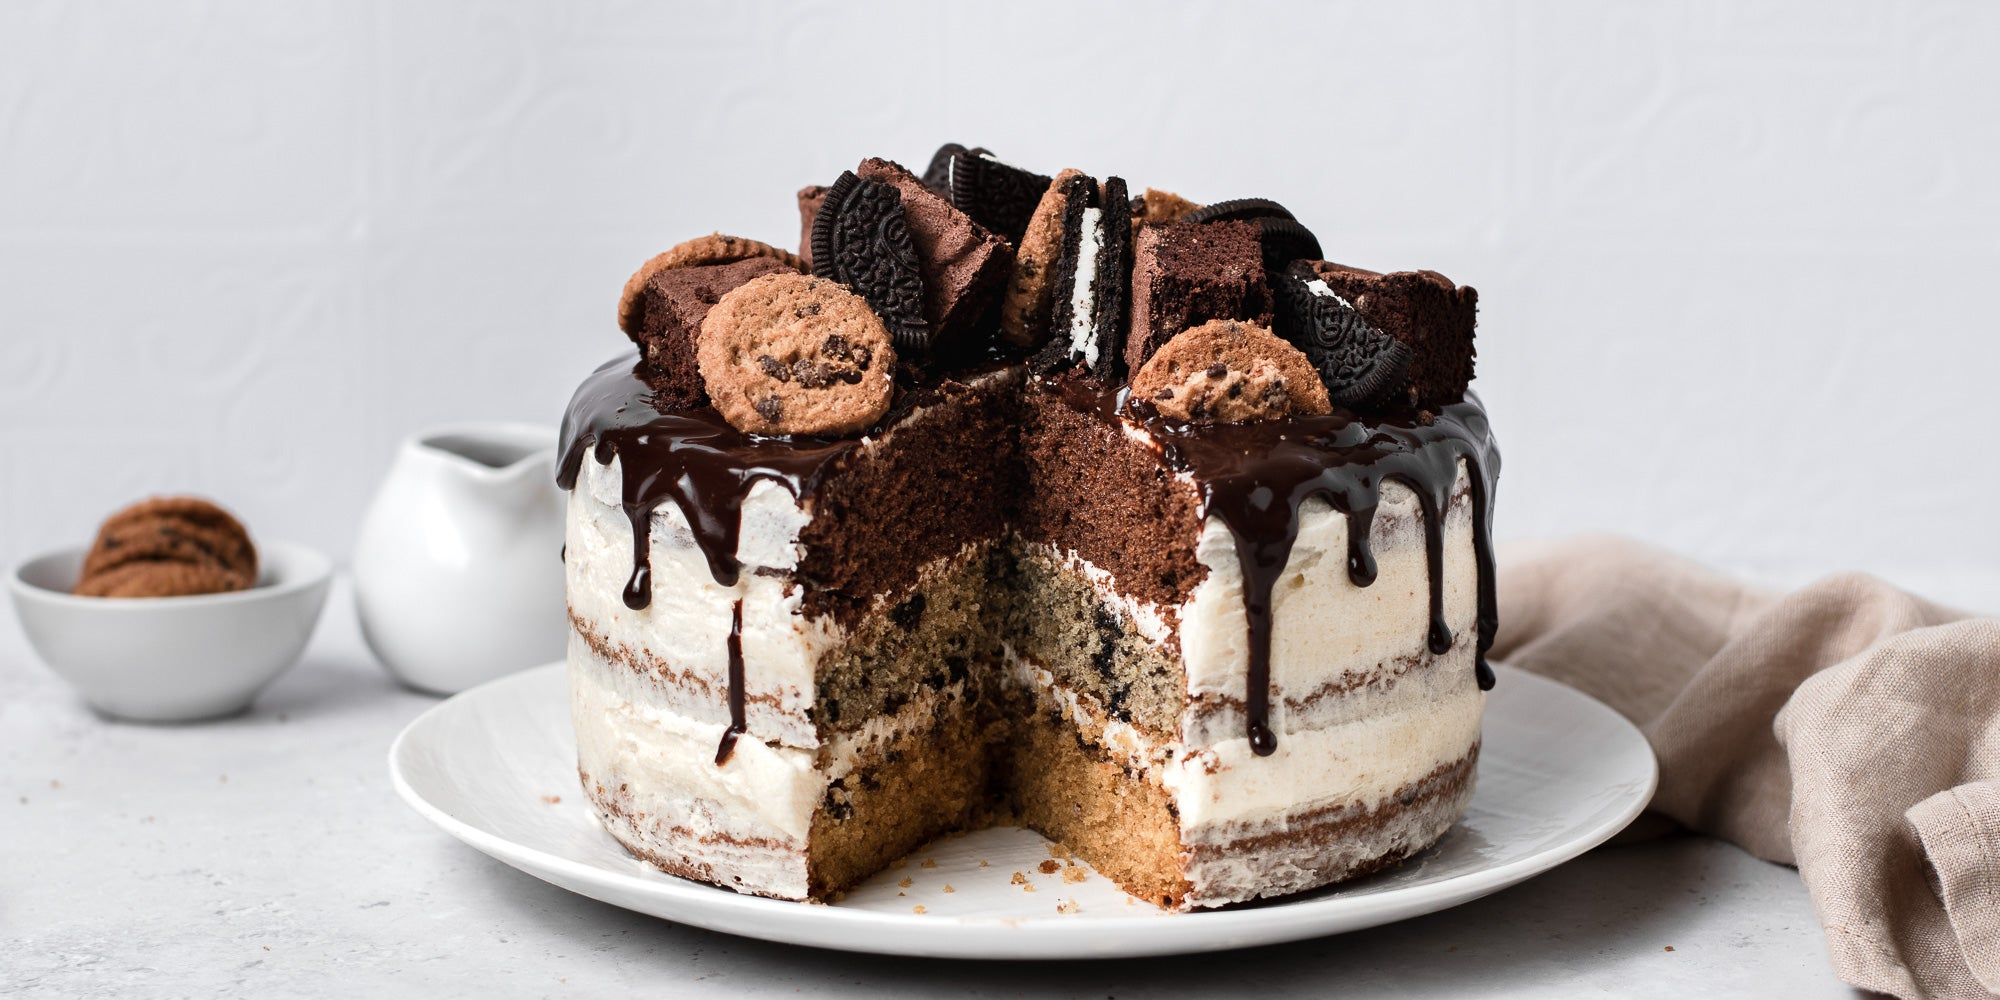 Cookie, Oreo & Brownie Layered Cake with a slice cut out of it.